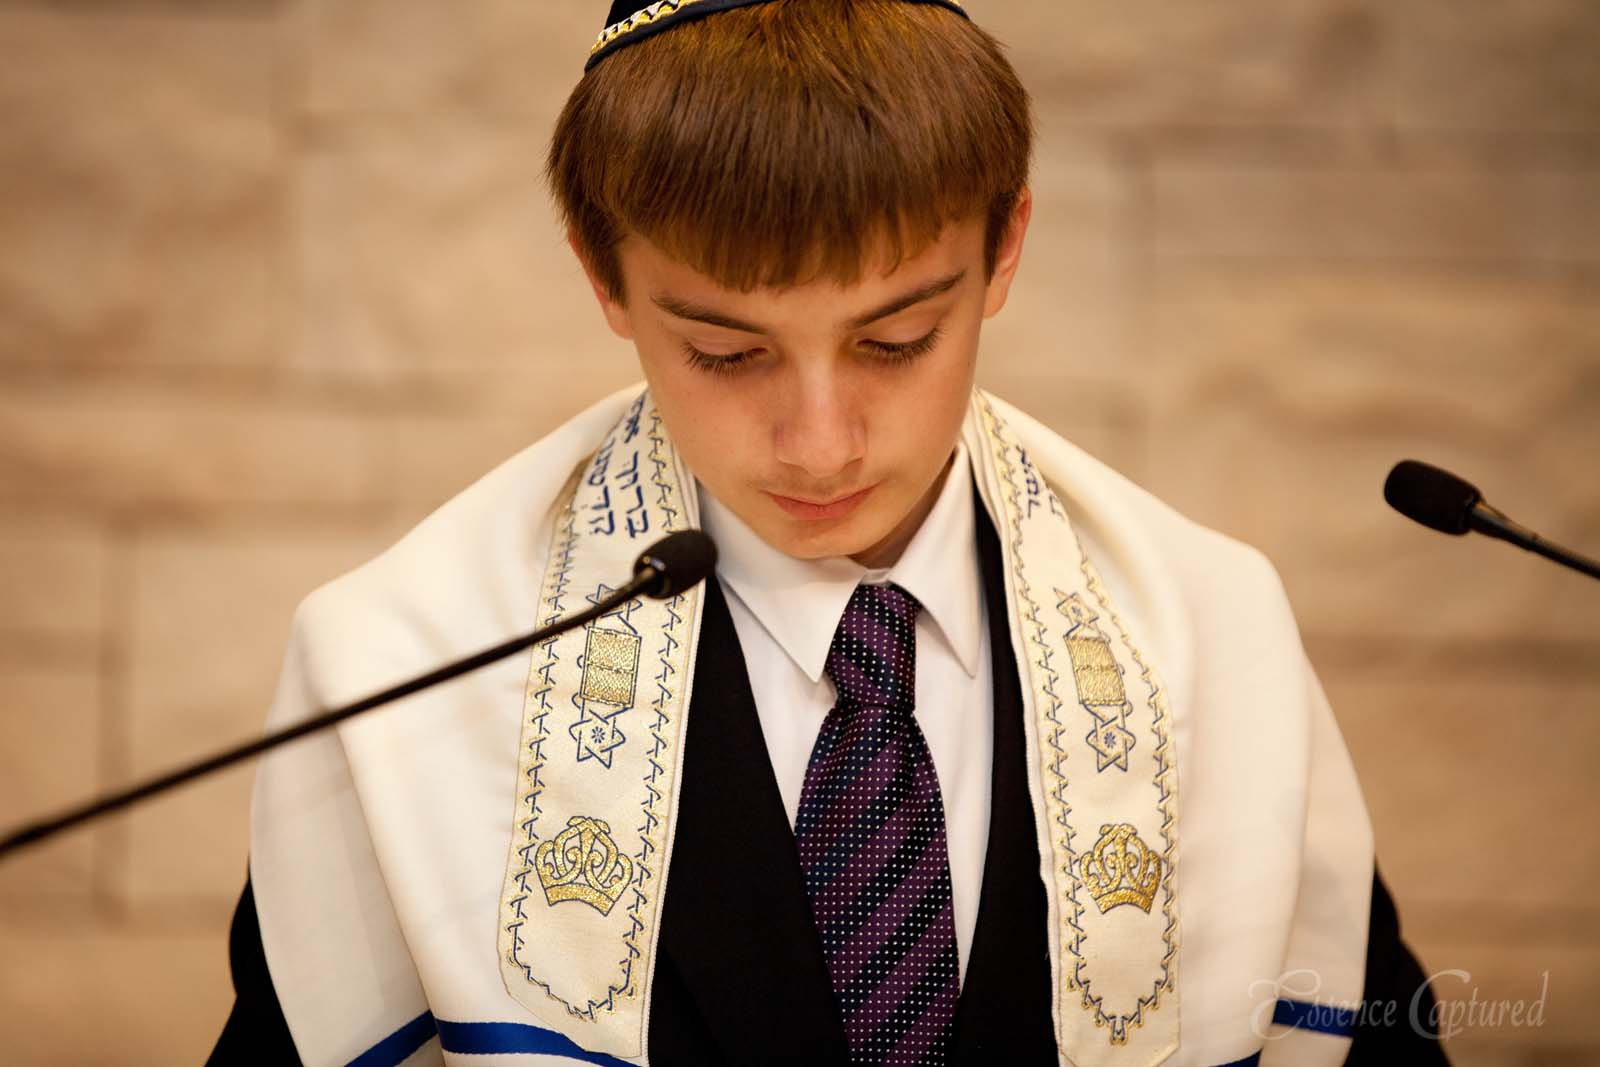 Bar Mitzvah boy at podium in synagogue